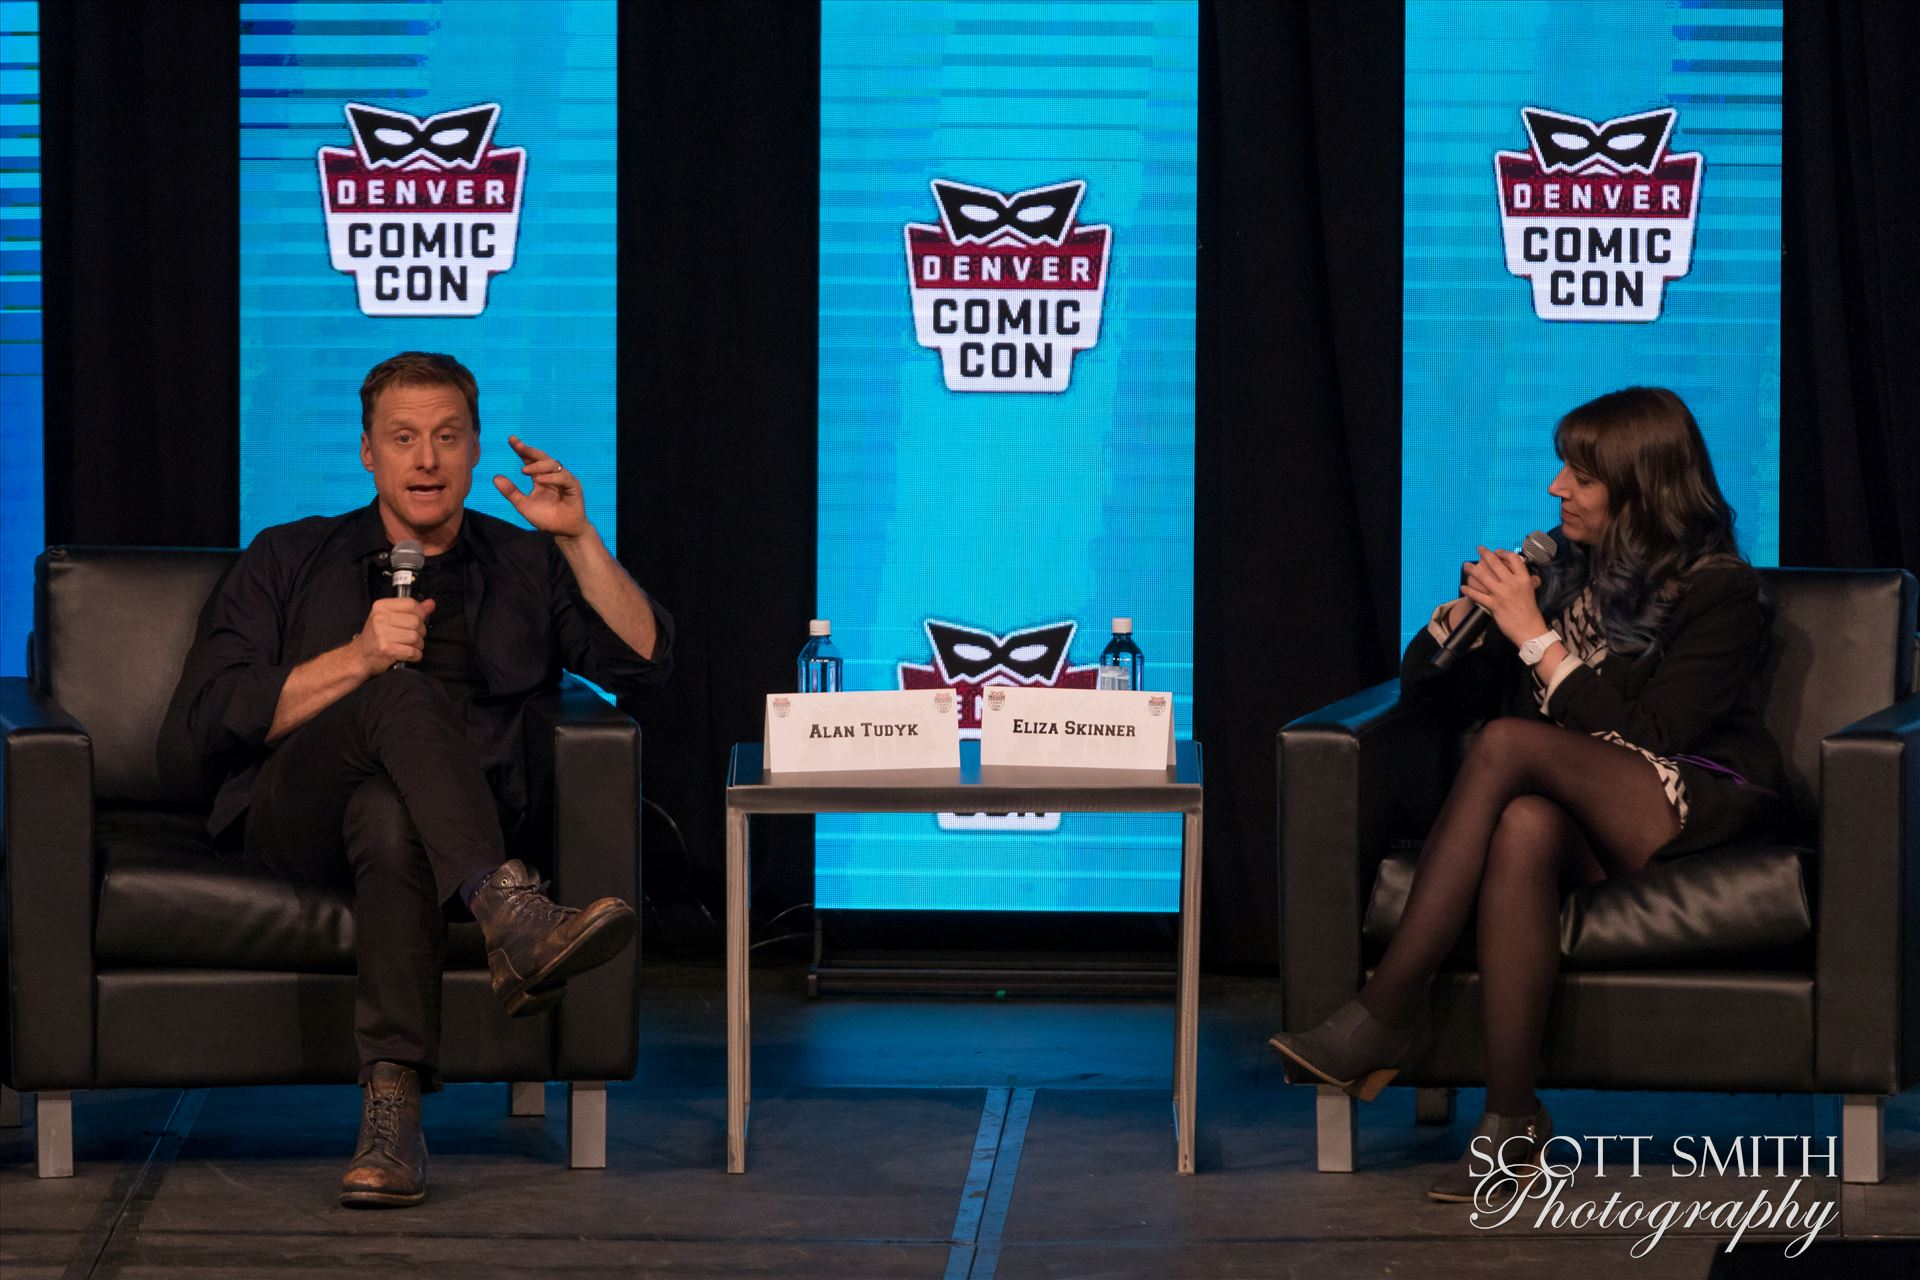 Alan Tudyk 3 at Denver Comic Con 2018 -  by Scott Smith Photos